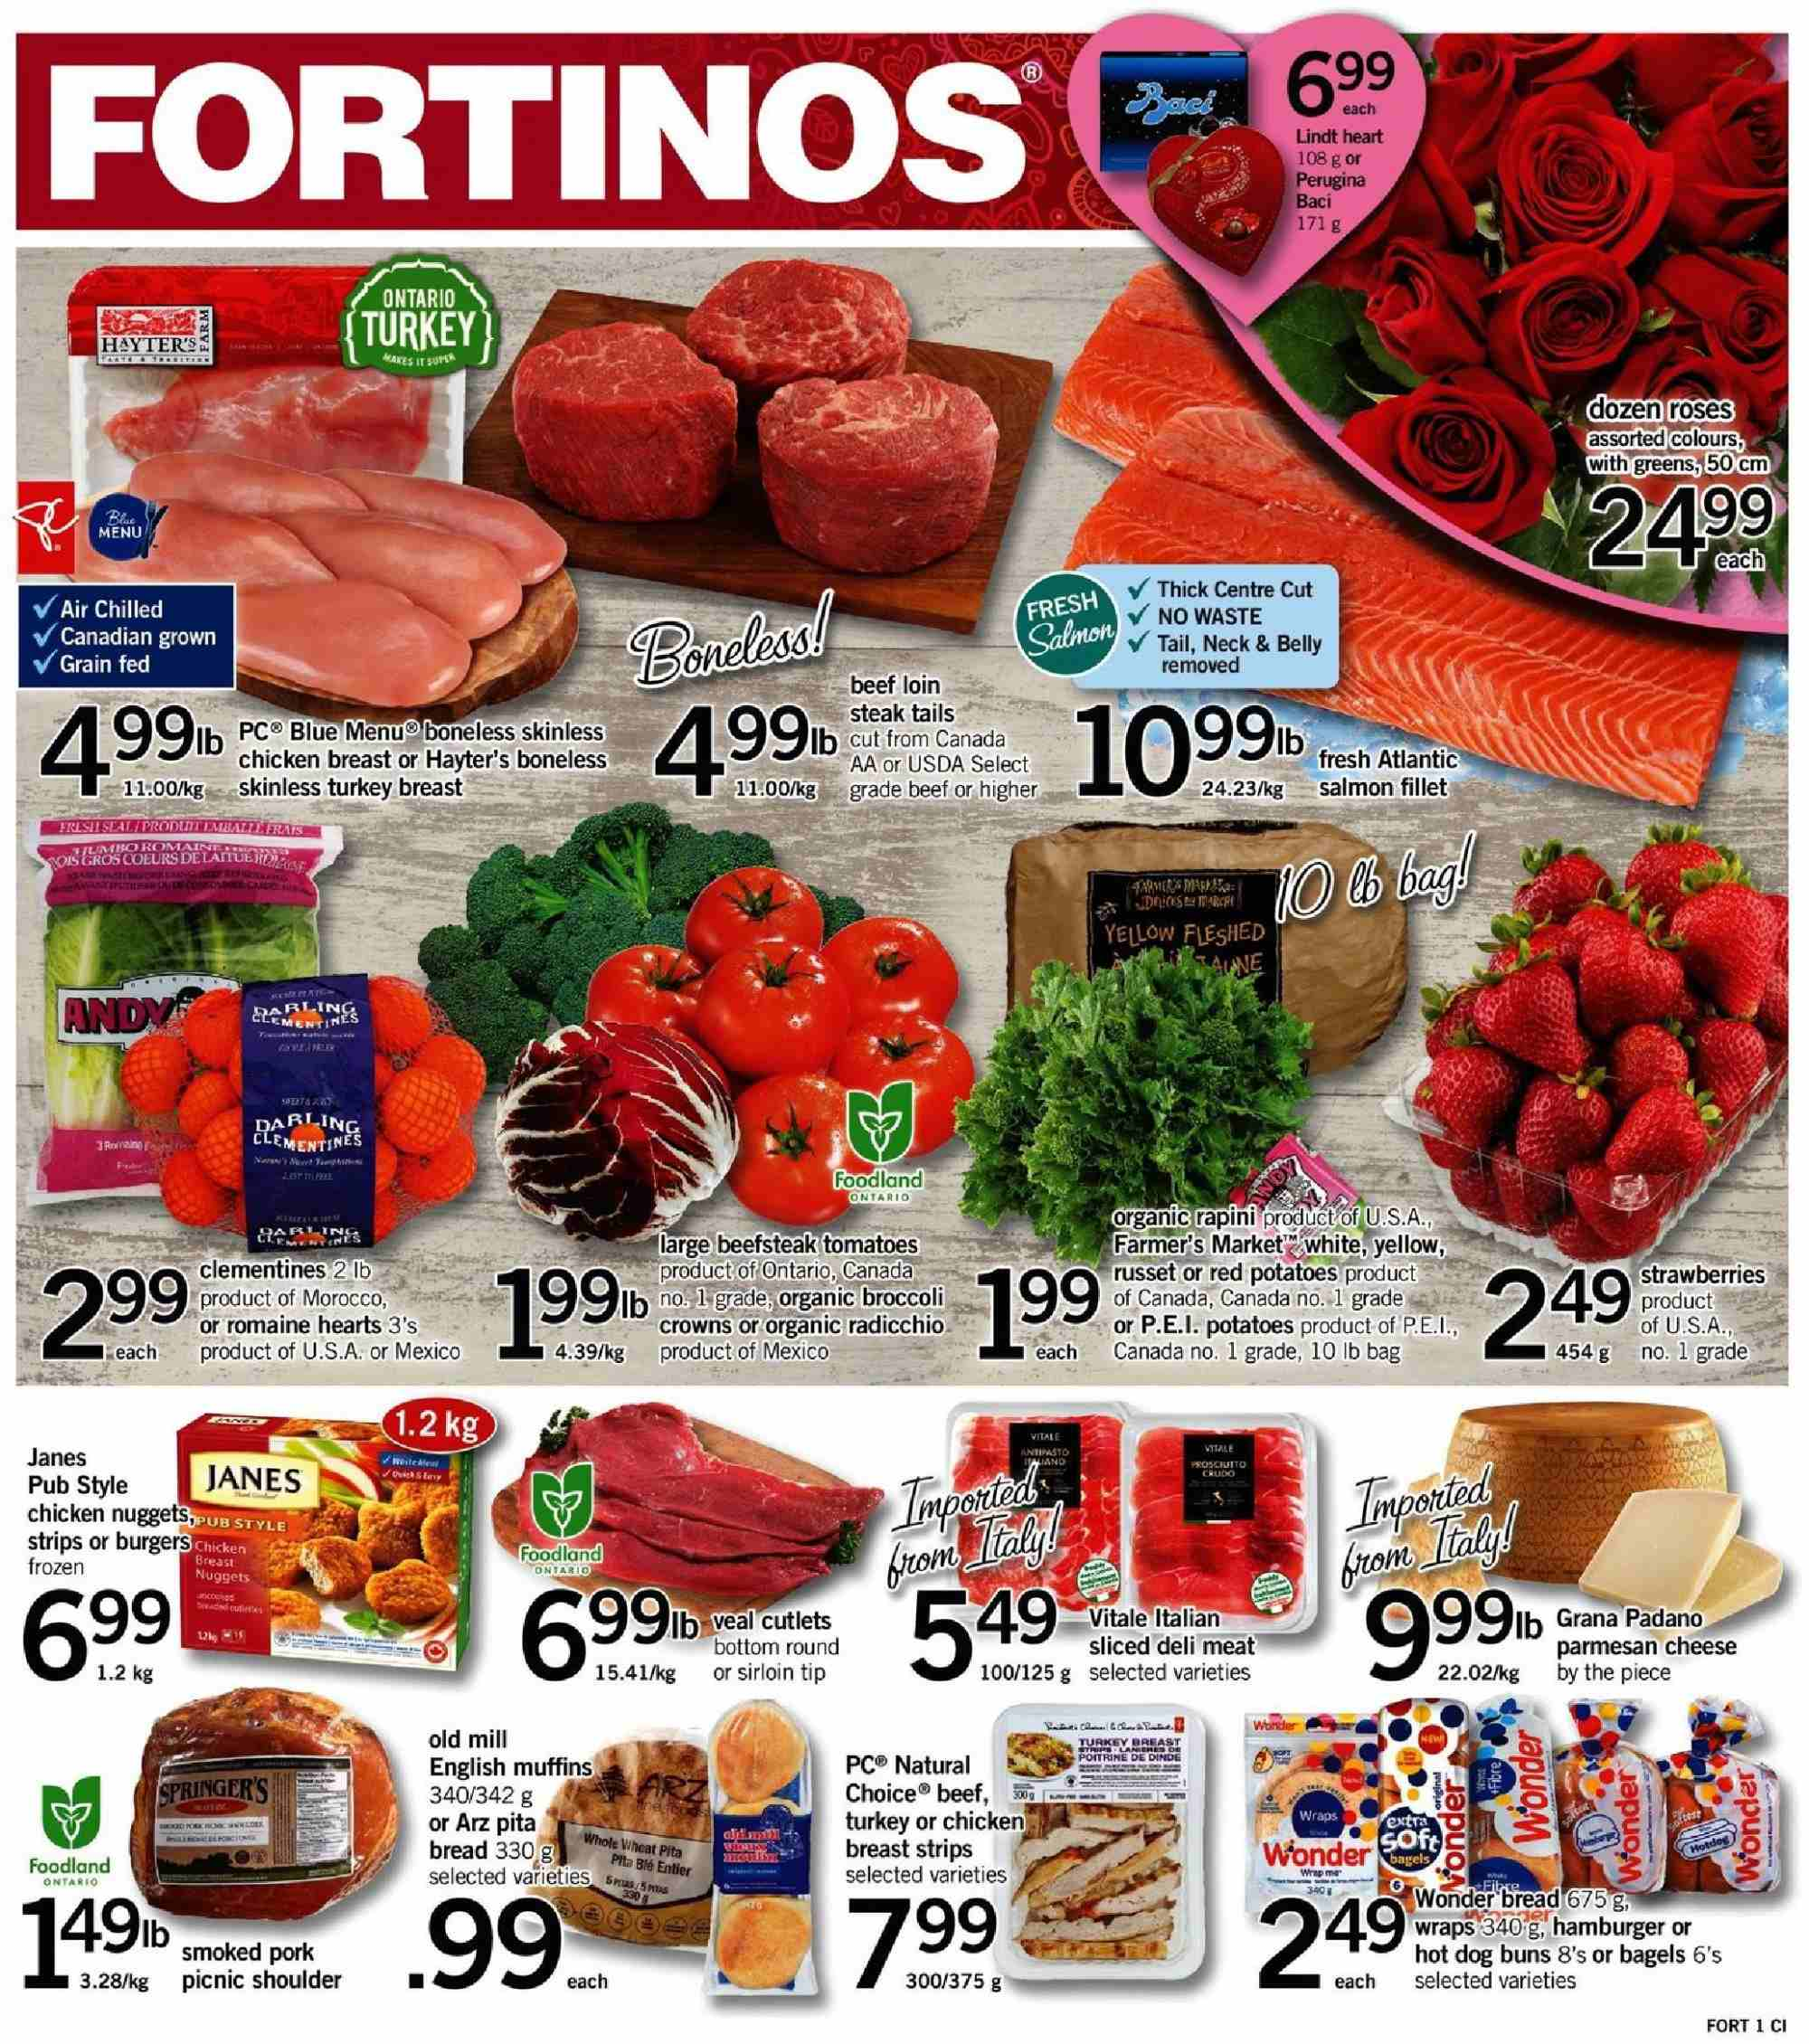 Fortinos Flyer - February 14, 2019 - February 20, 2019 - Sales products - bag, bagels, beef meat, bottom, bread, broccoli, clémentines, english muffins, muffins, radicchio, salmon, salmon fillet, tomatoes, turkey, turkey breast, veal cutlets, veal meat, wrap, hot dog, pita, pork meat, potatoes, chicken, chicken breast, organic, steak, cheese, burgerON DUPLICATE KEY UPDATE `name` = VALUES(`name`); burgers, nuggets, hamburger, roses, lindt. Page 1.